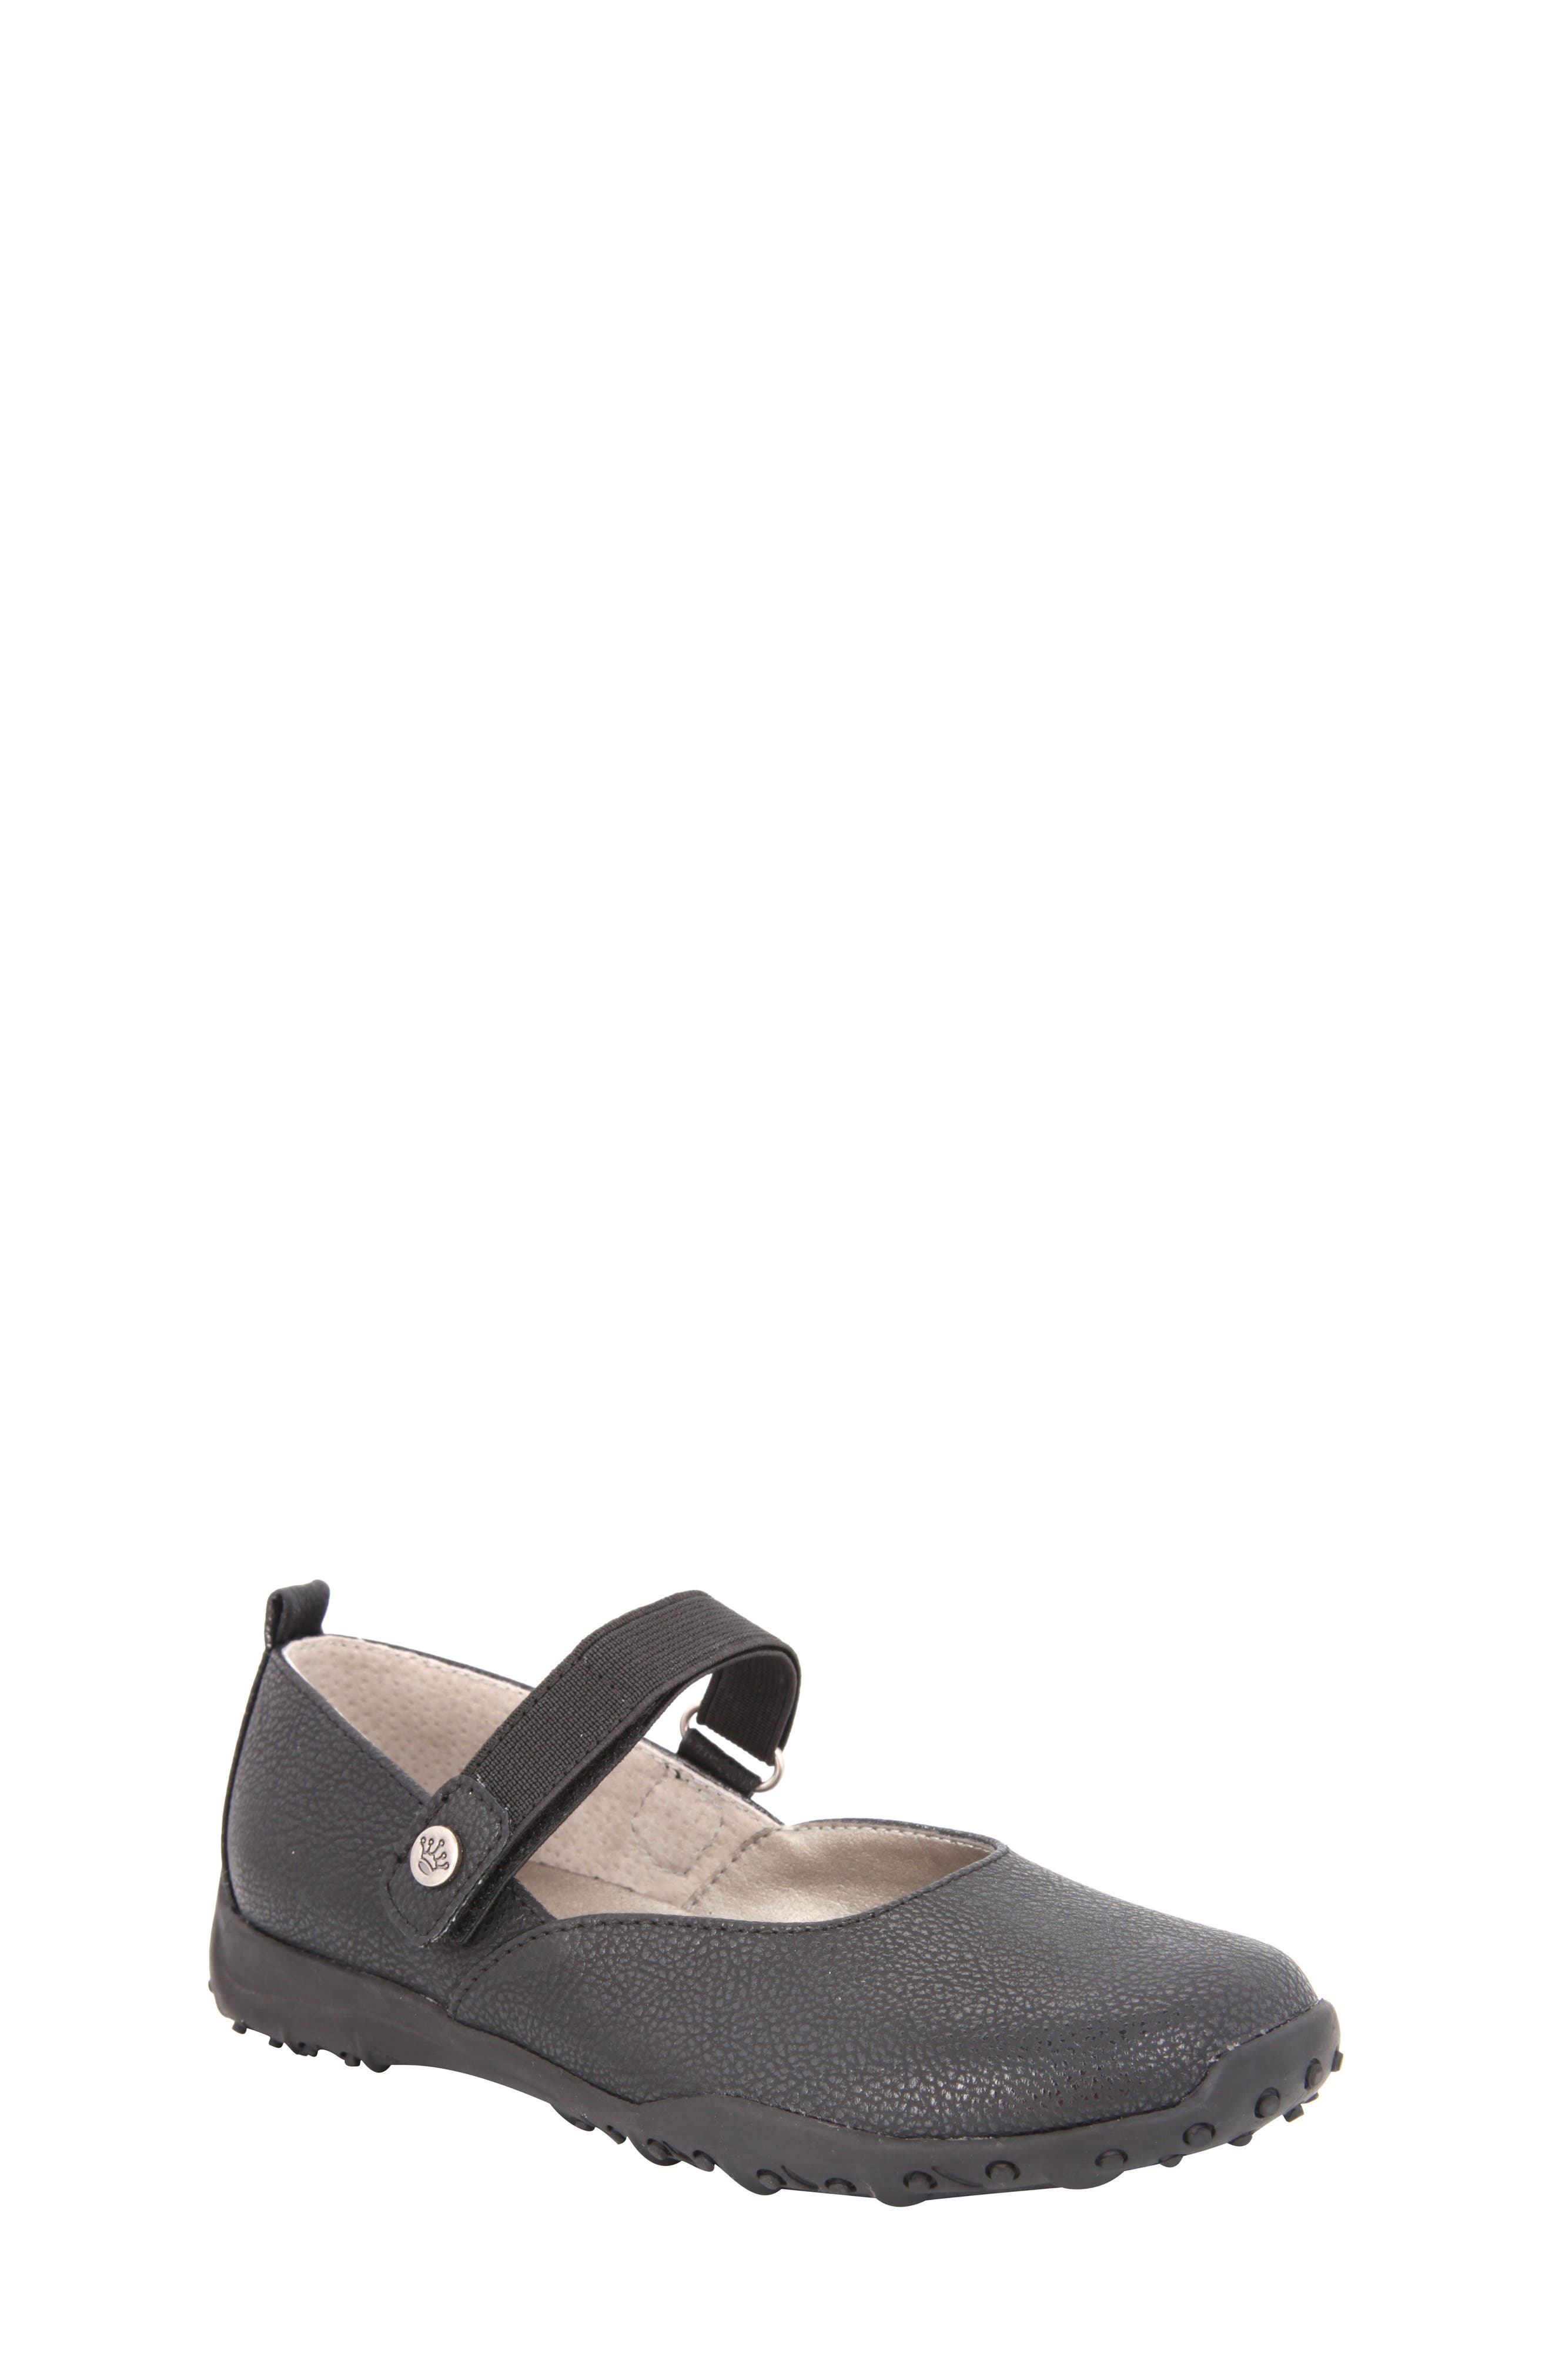 Juliette Mary Jane Flat,                         Main,                         color, 003